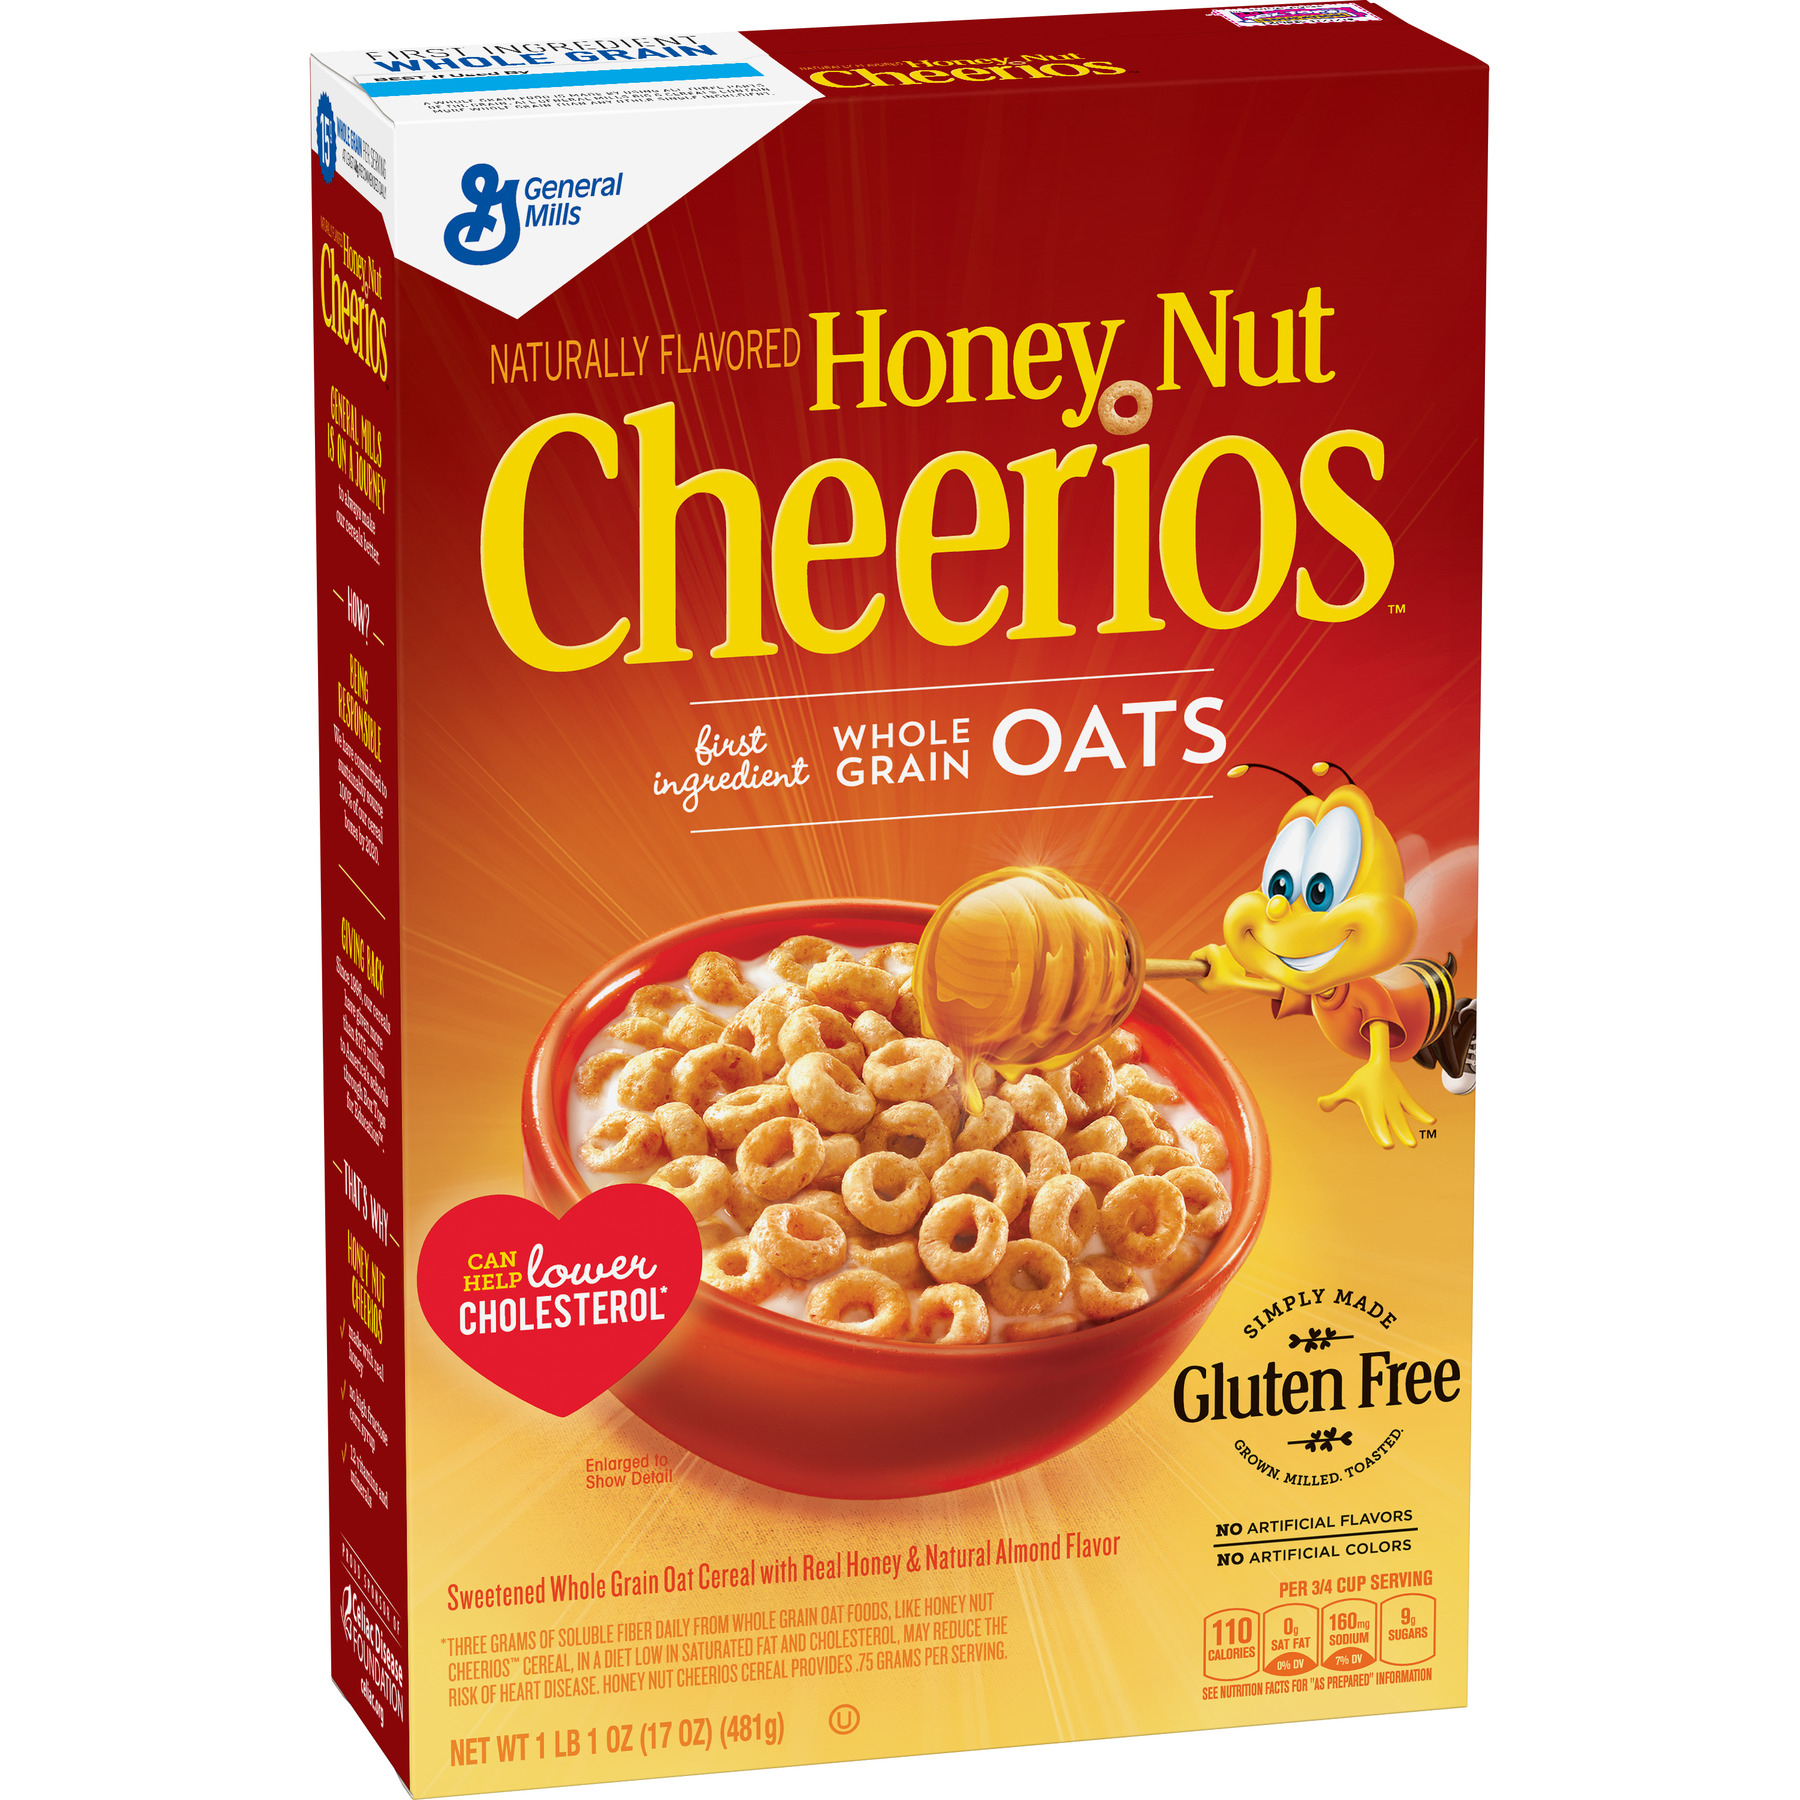 Honey Nut Cheerios Gluten Free Cereal, 17 Oz (Pack of 2)